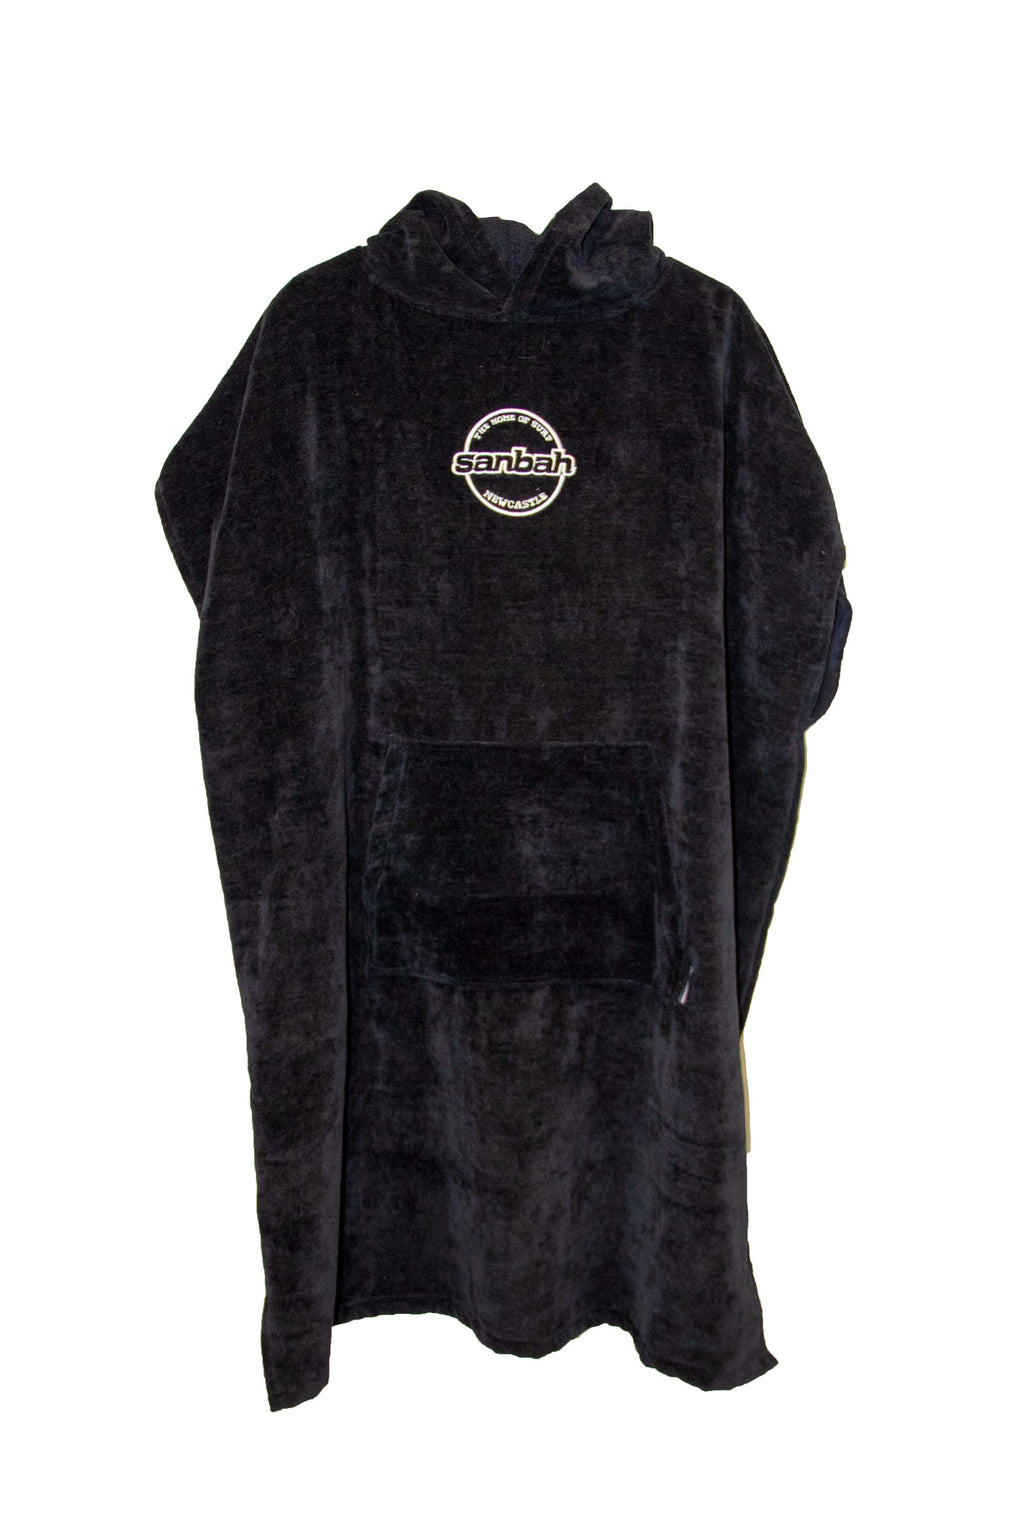 Sanbah Adult Hooded Poncho Towel